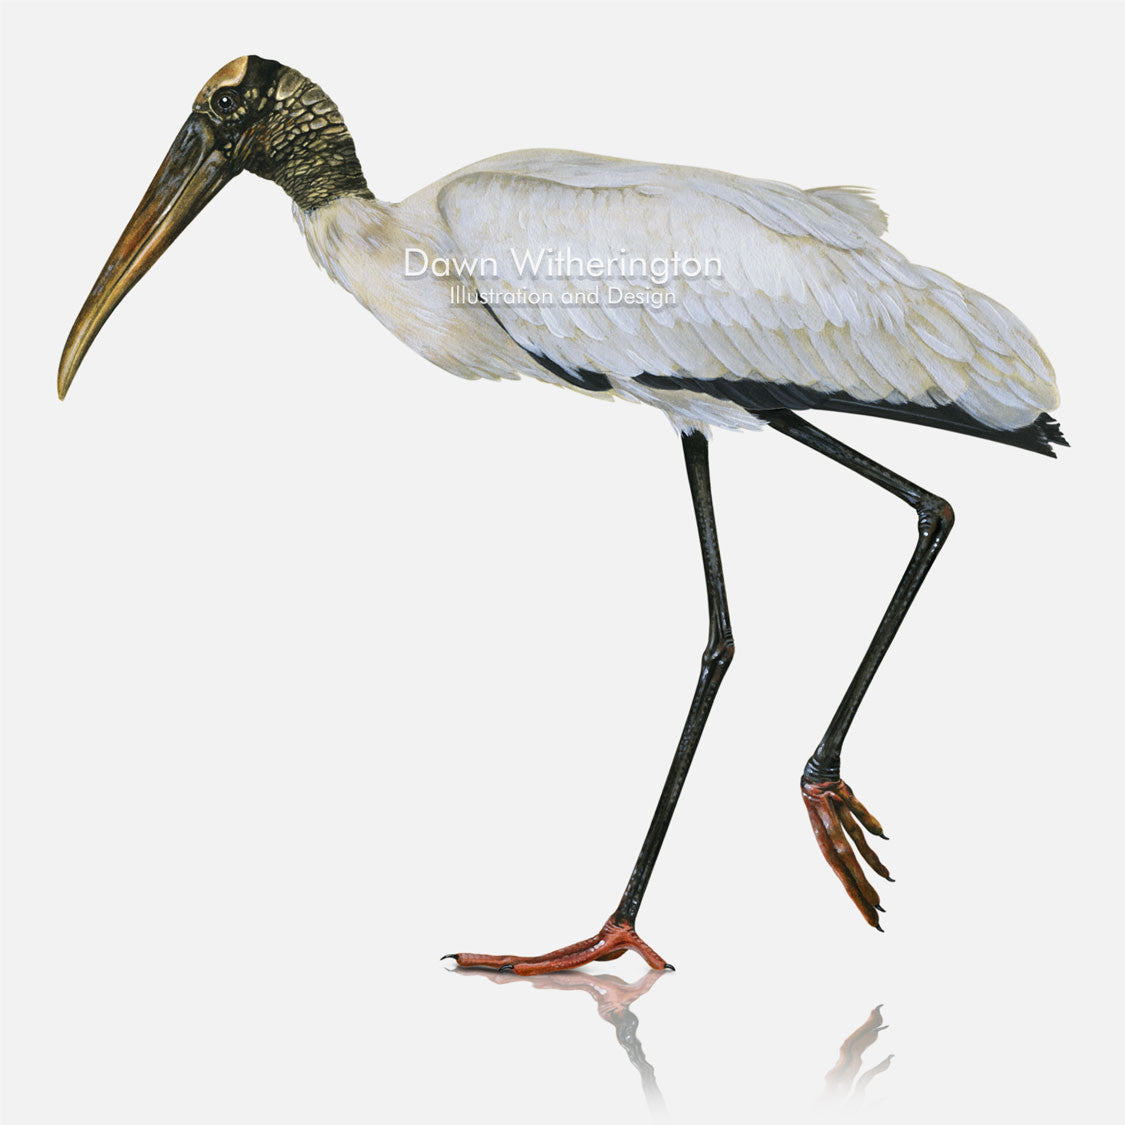 This beautiful illustration of a wood stork, Mycteria americana, is biologically accurate in detail.